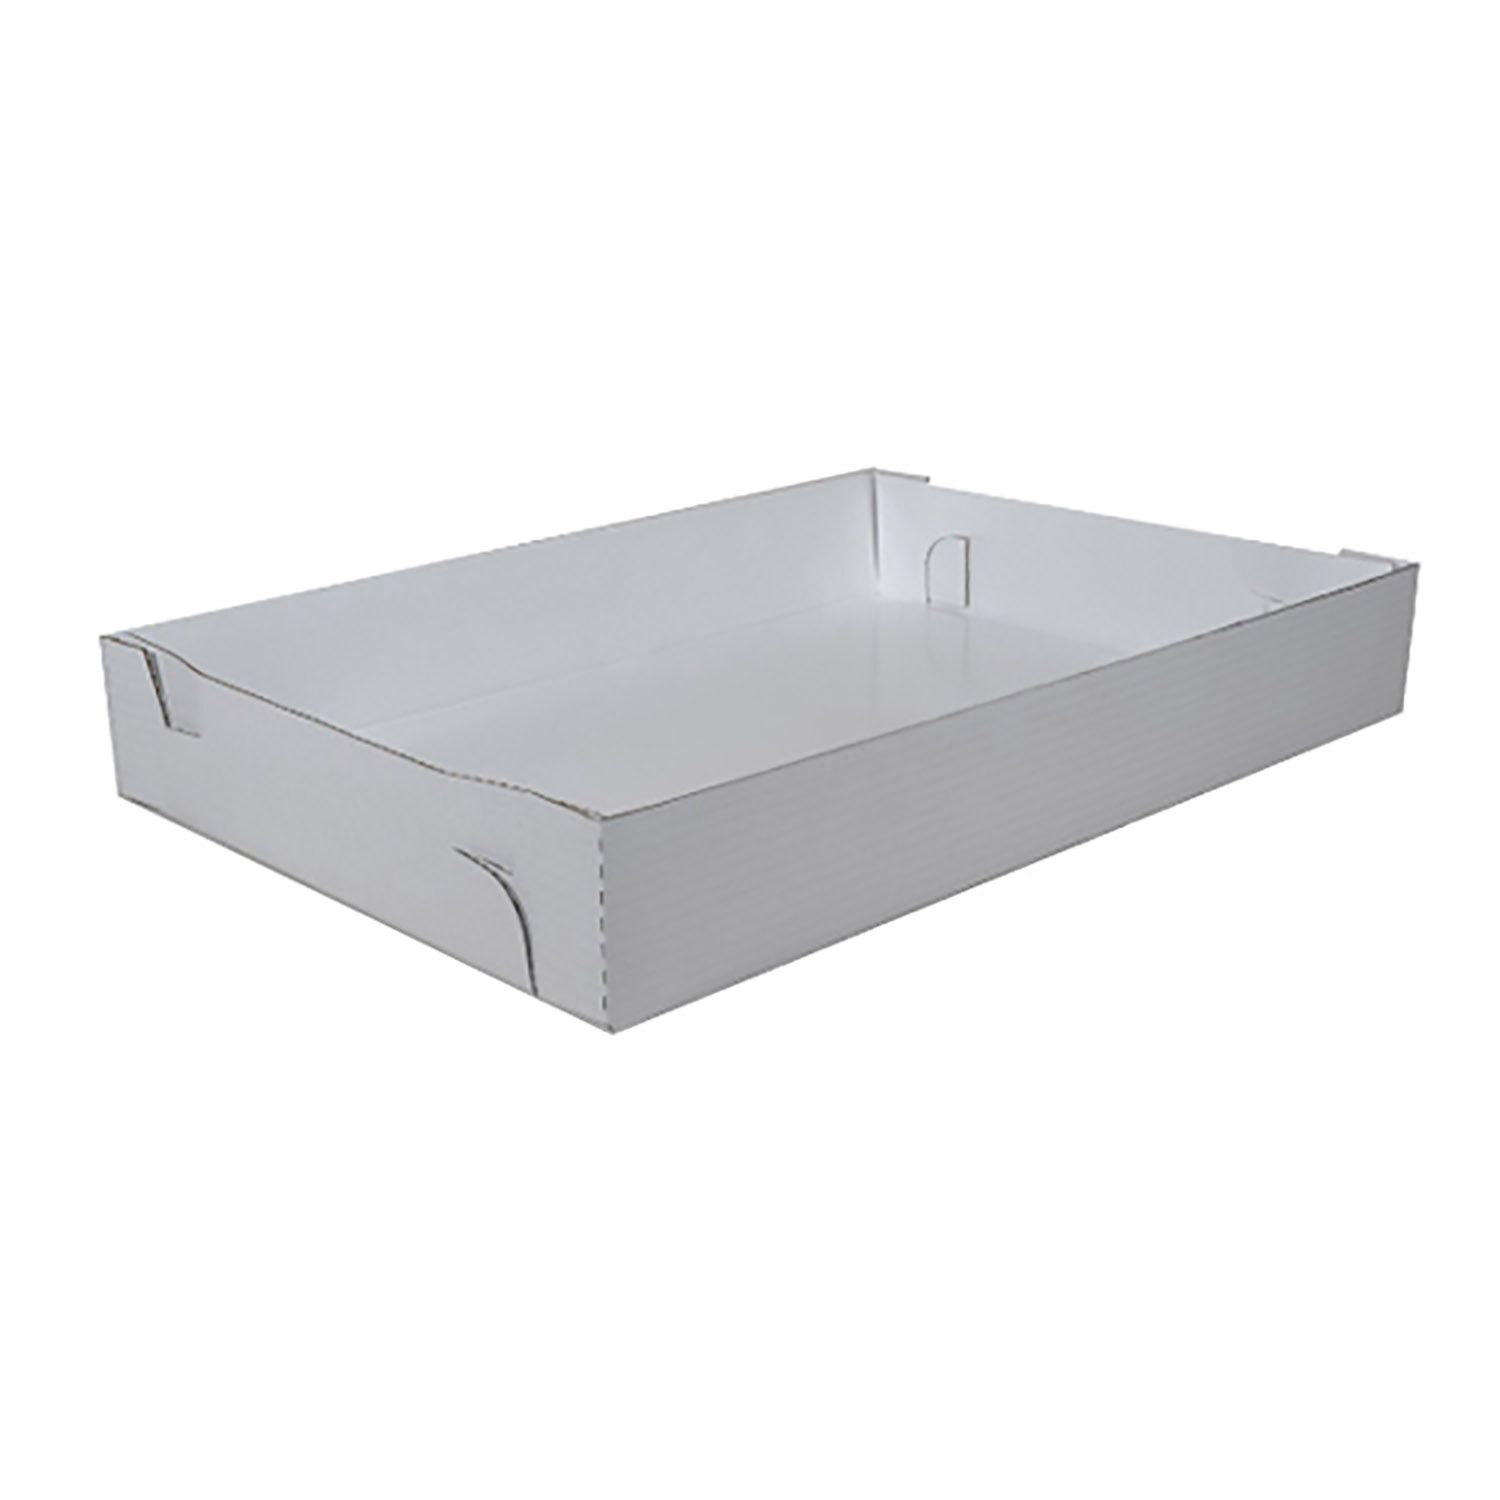 "25 7/8"" x 18"" x 4"" Full Sheet Cake Tray"